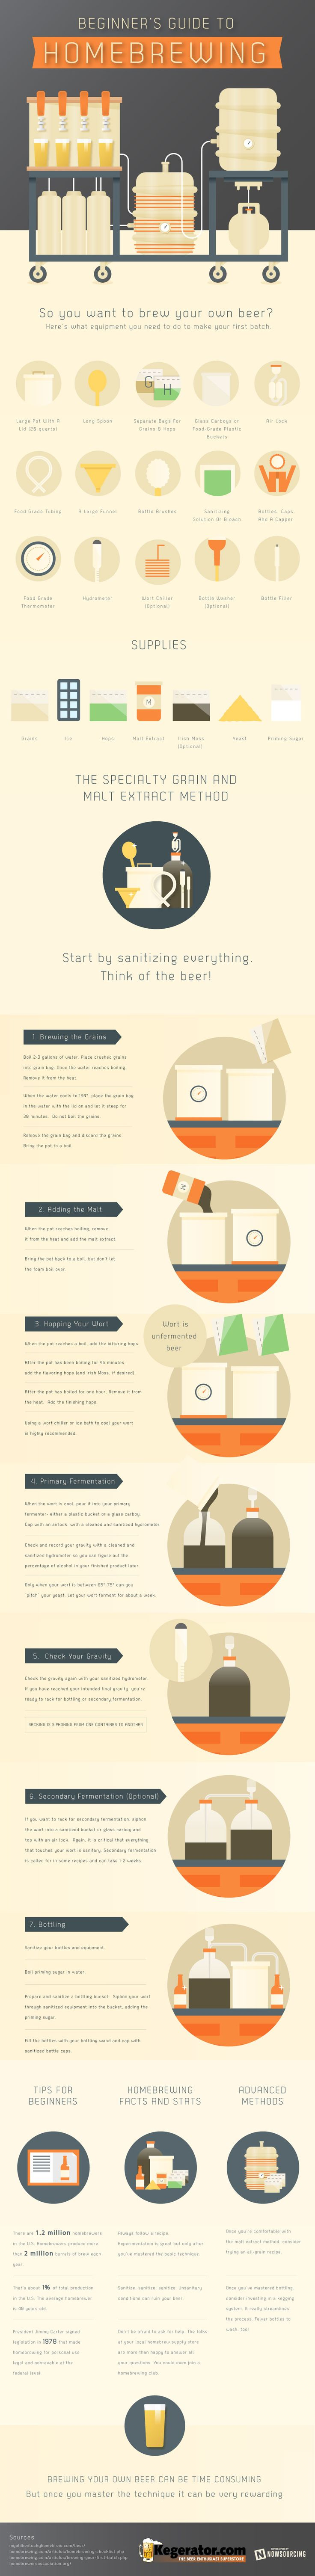 Impress Your Friends: This Fun Guide Can Help You Brew Your Own Beer